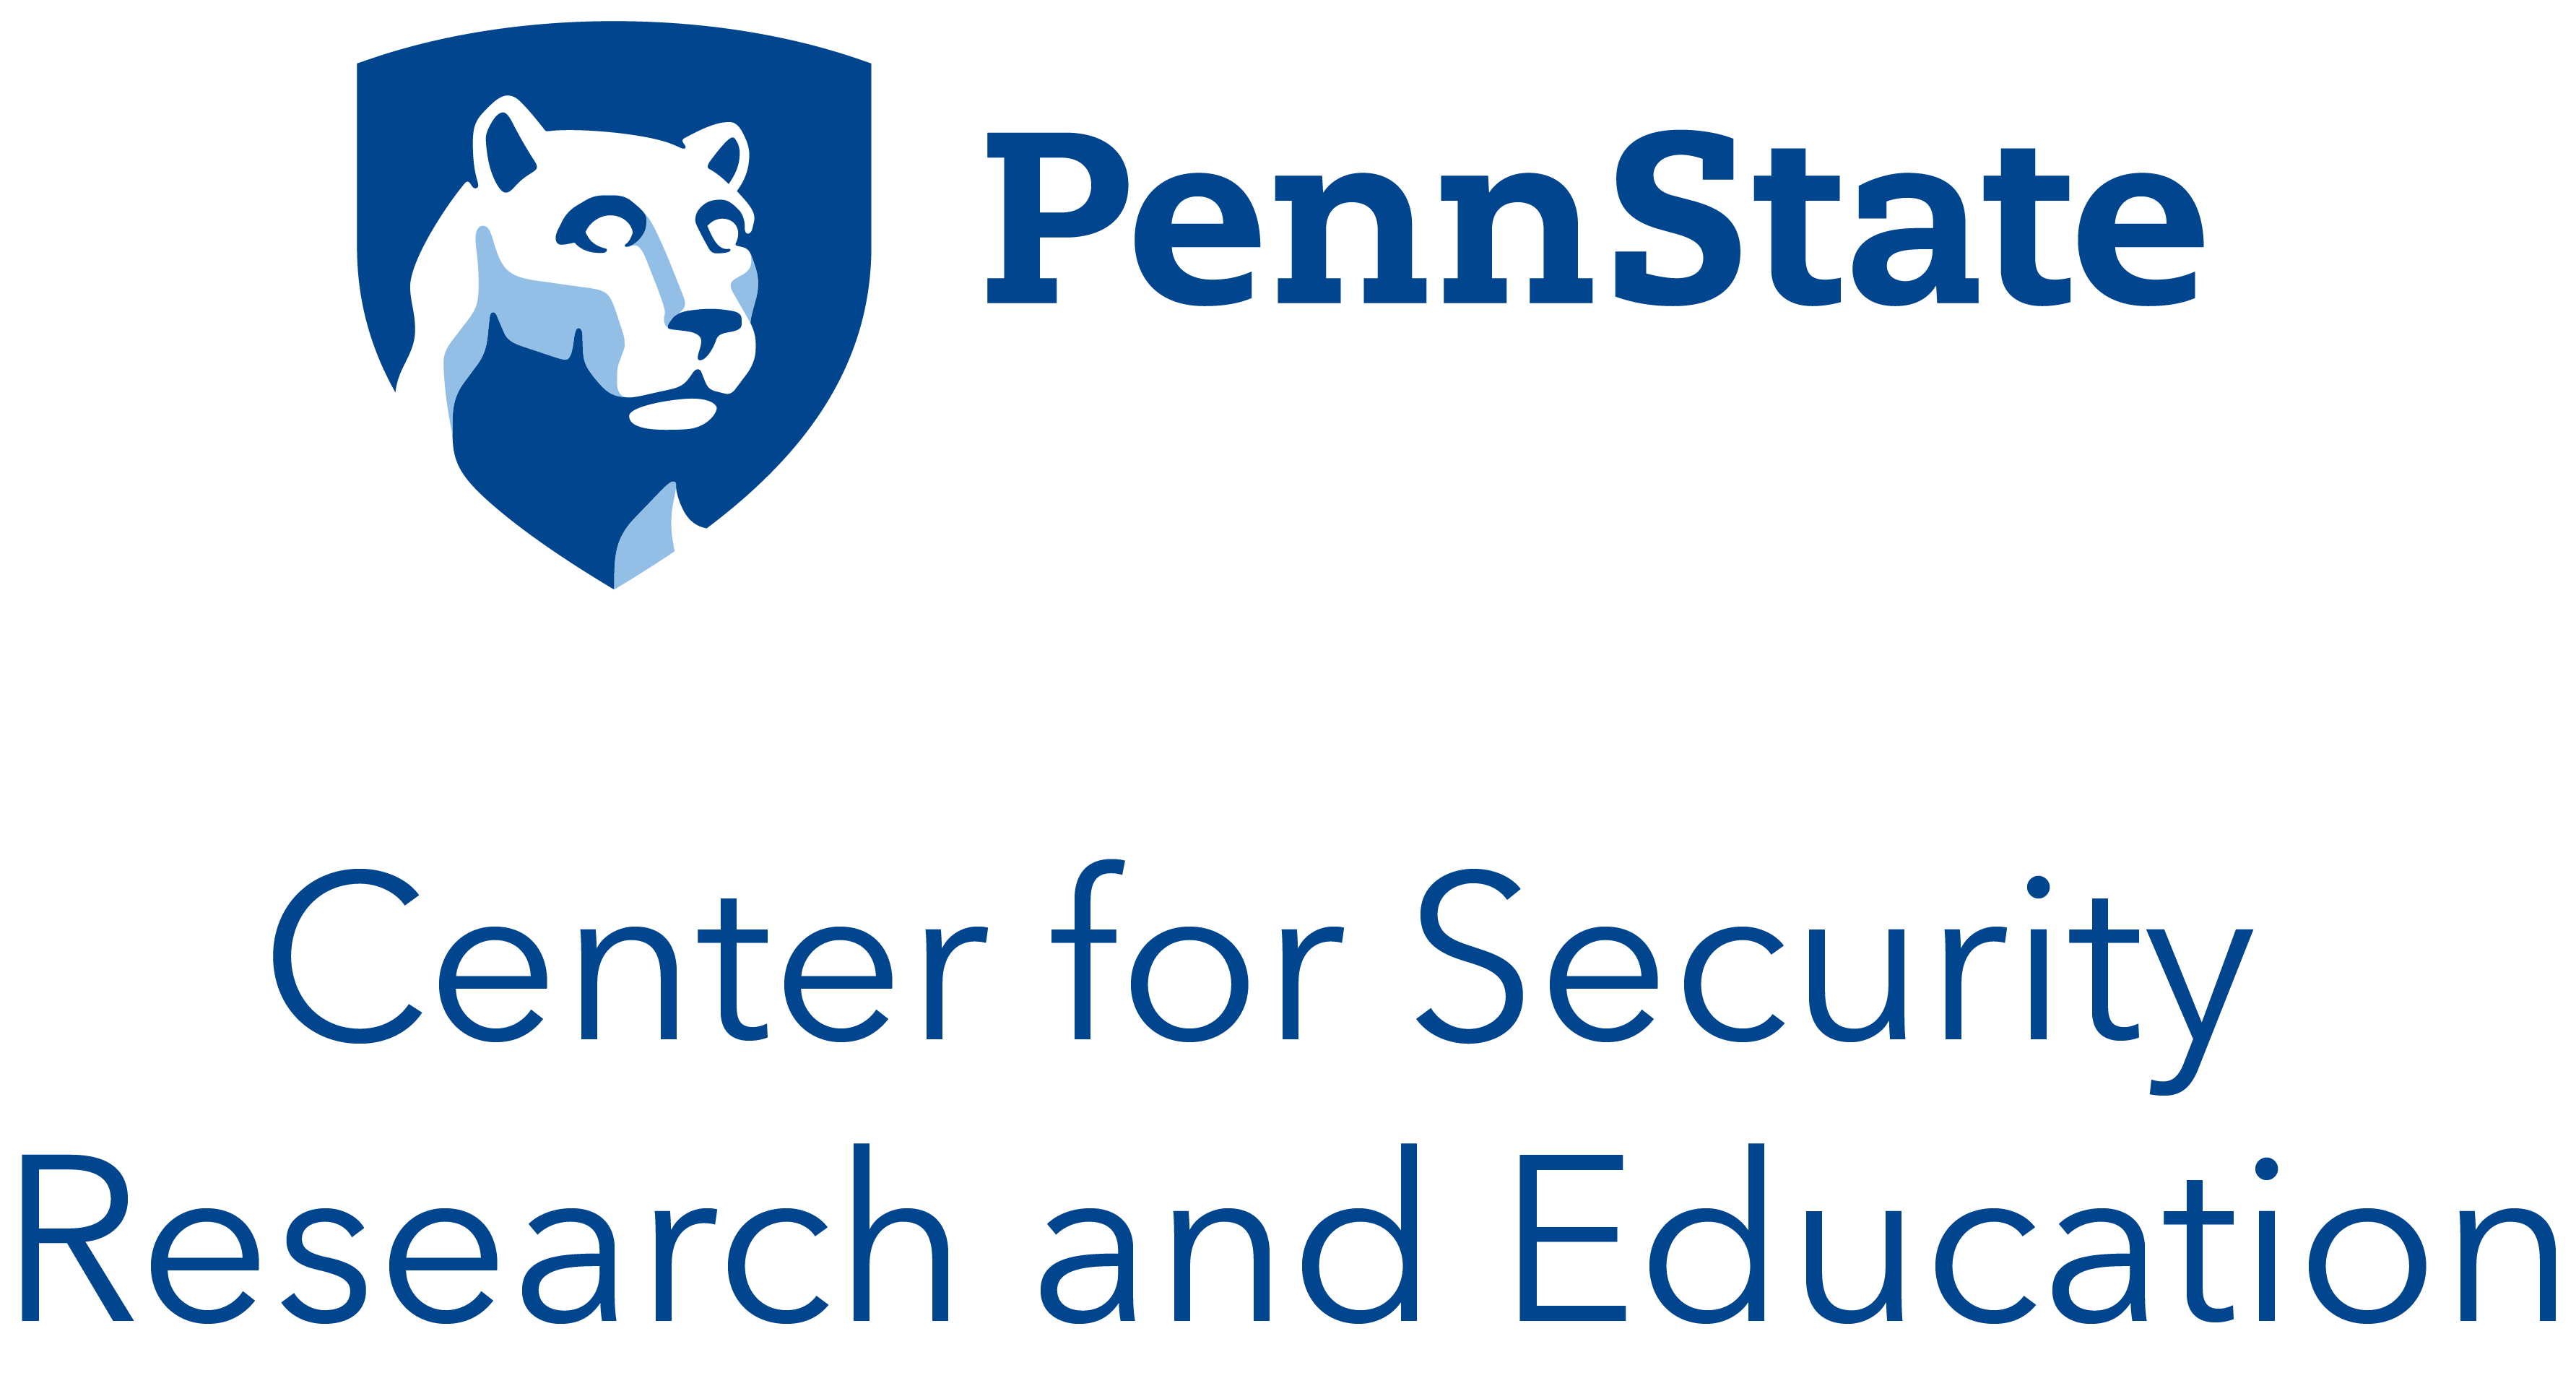 center_for_security_research_education_logo_stacked